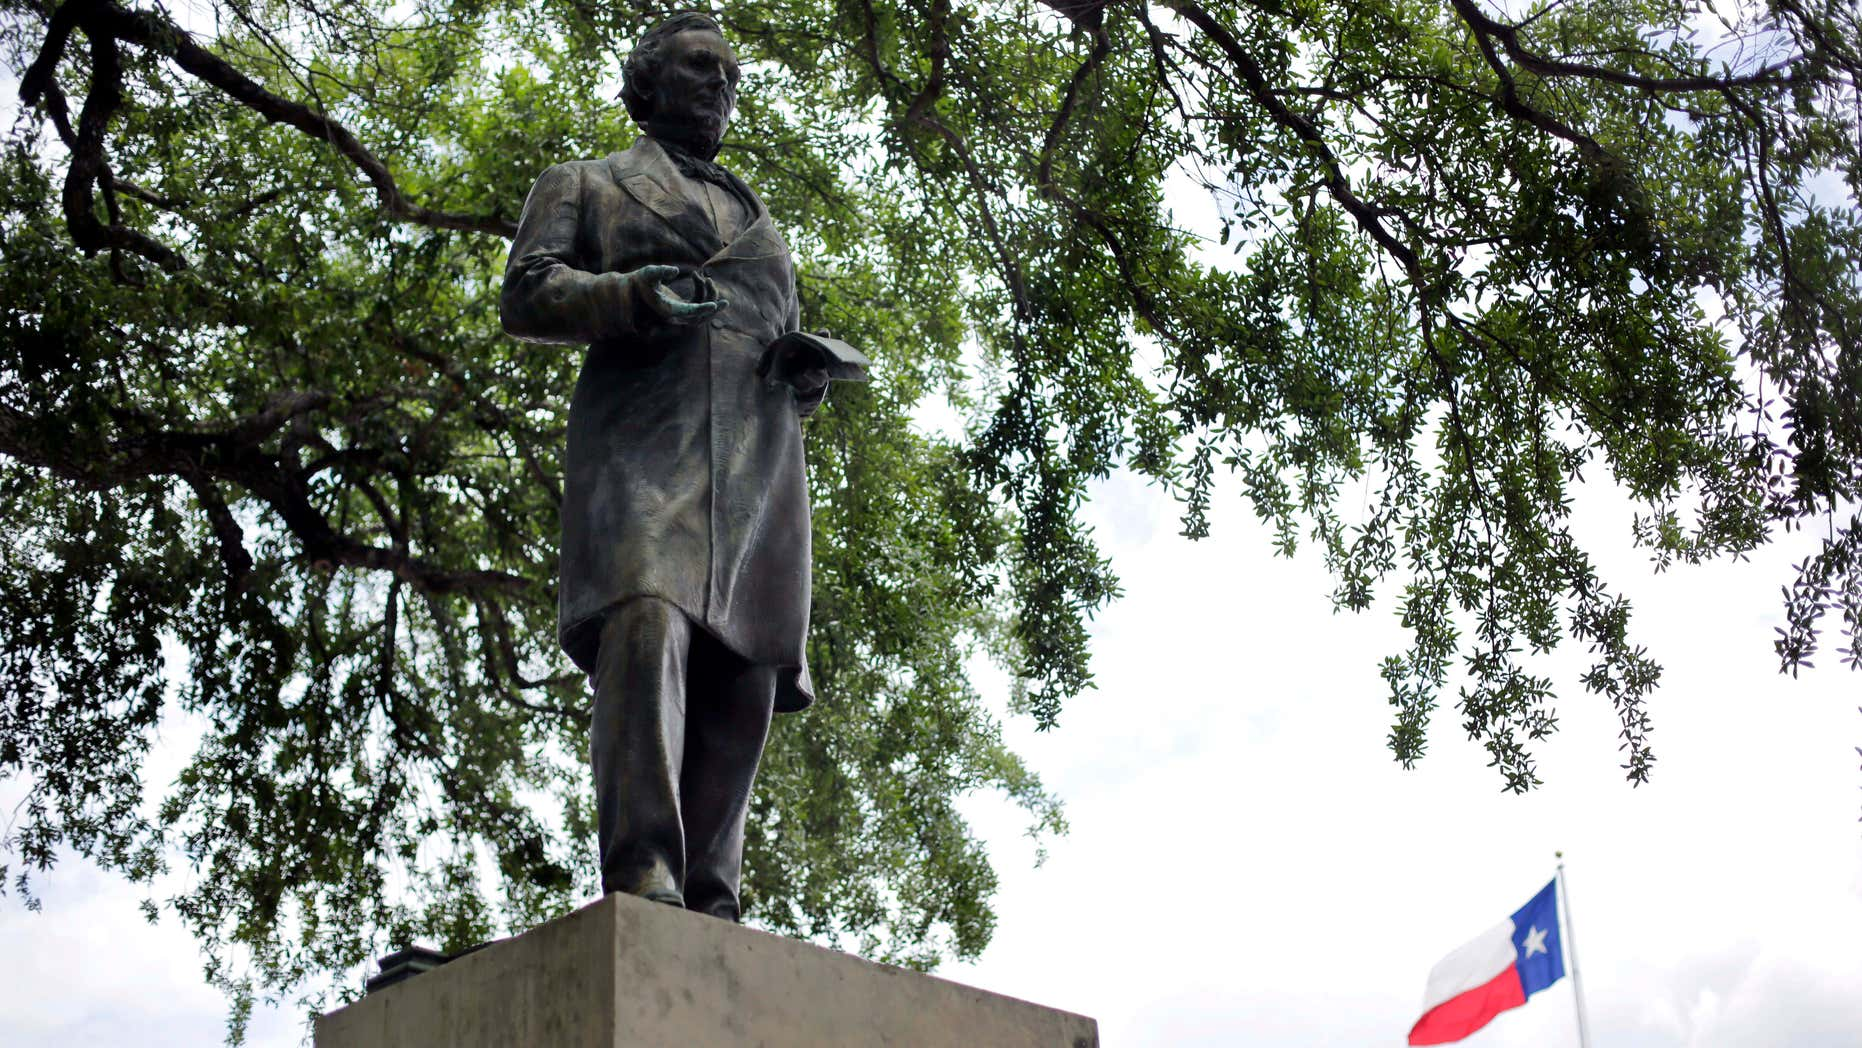 May 5, 2015: A statue of Jefferson Davis is seen on the University of Texas campus.